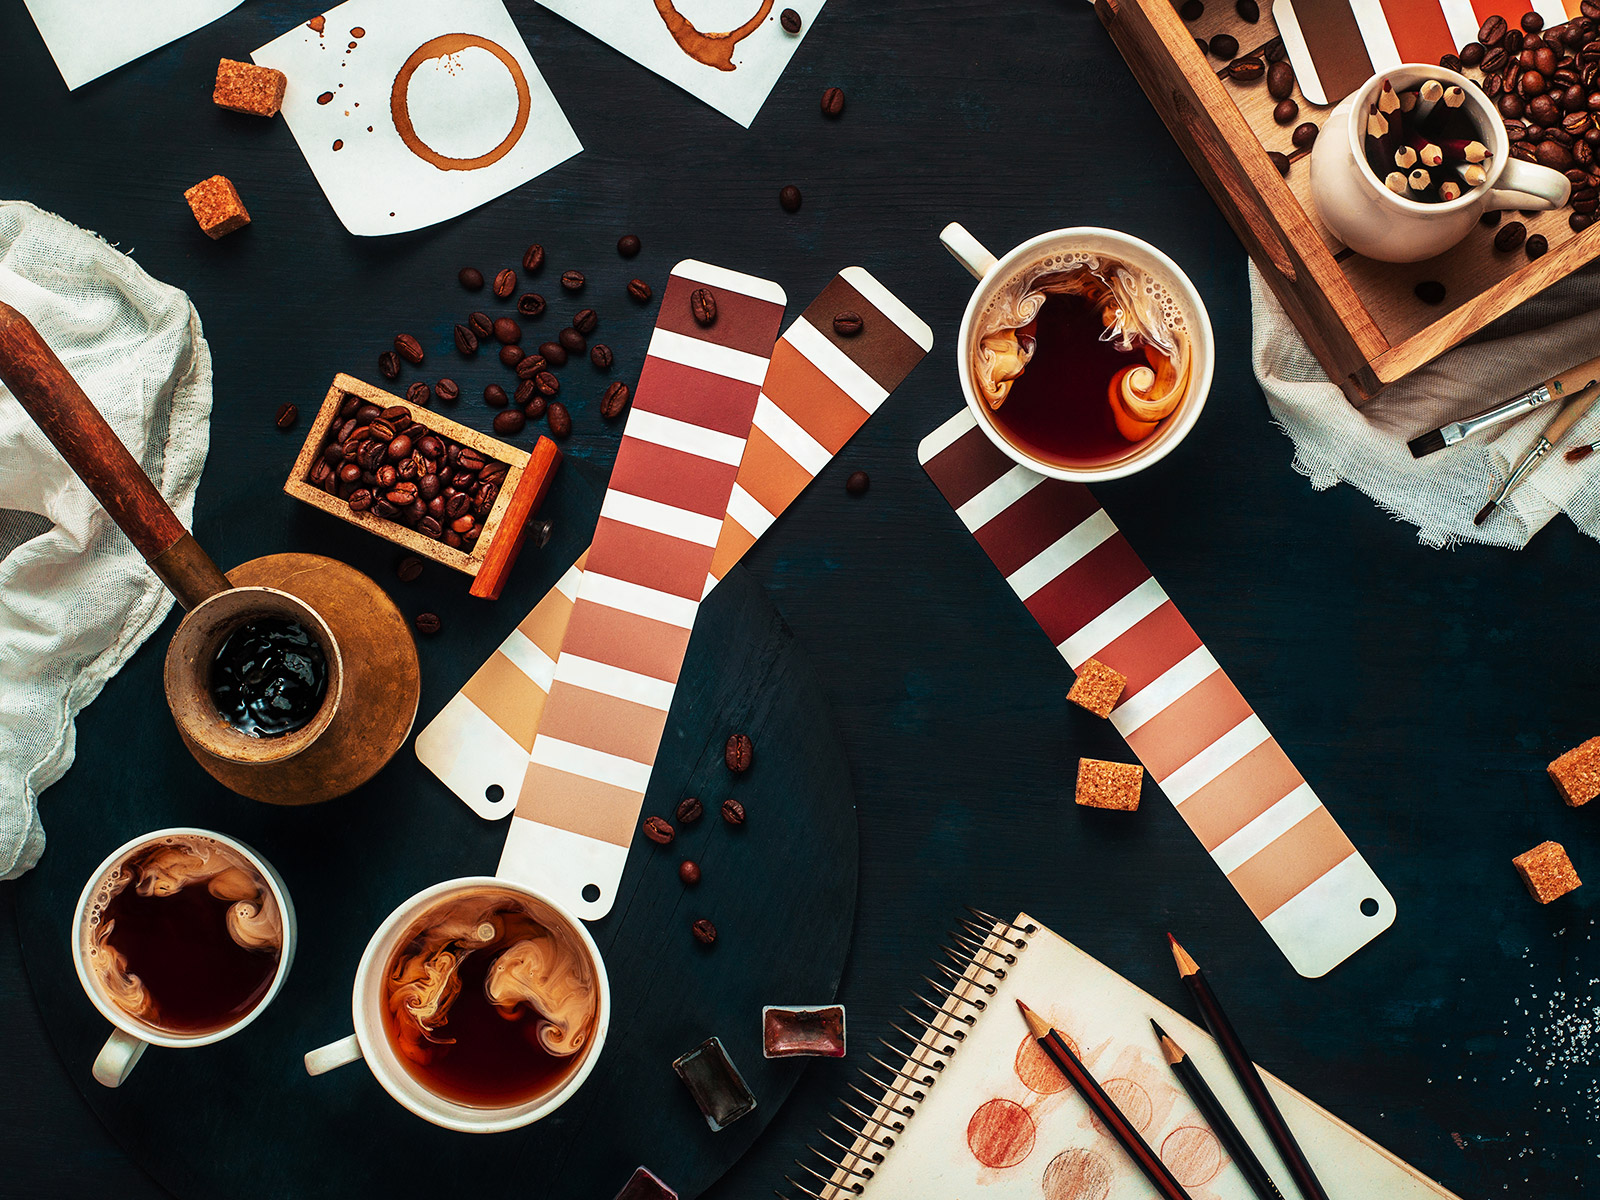 An Instagram Artists Is Pairing Food With Pantone Swatches